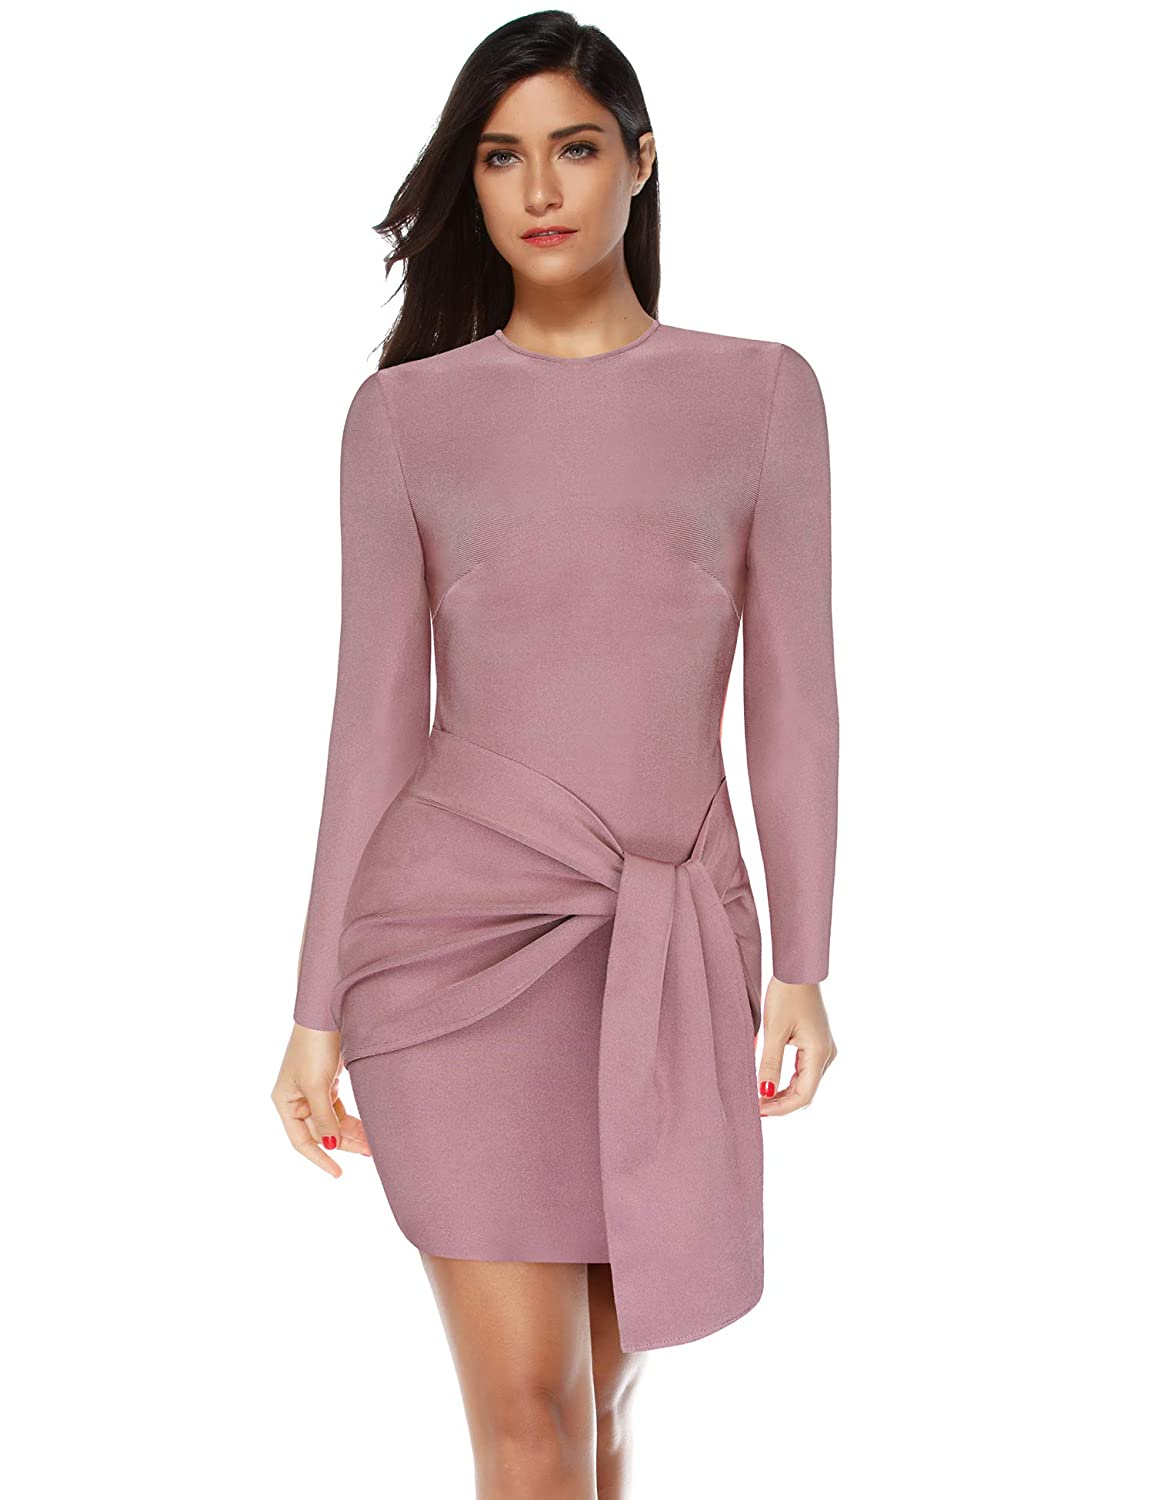 e4e5890662 Amazon.com  Meilun Women s Rayon Long Sleeve Bandage Bodycon Party Dress   Clothing